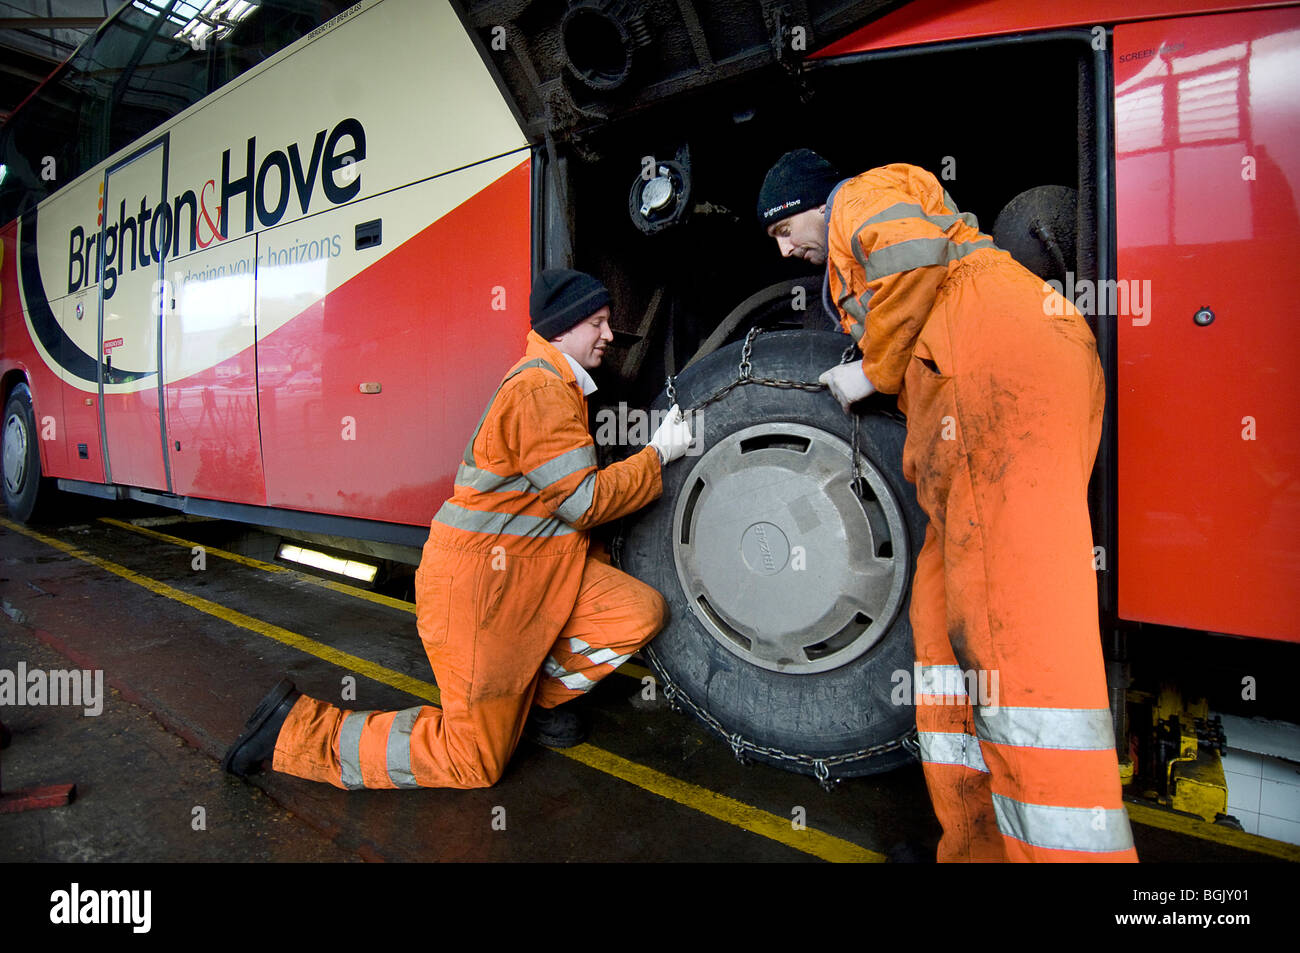 Two mechanics fitting snow chains to a bus wheel using a bus garage inspection pit. - Stock Image